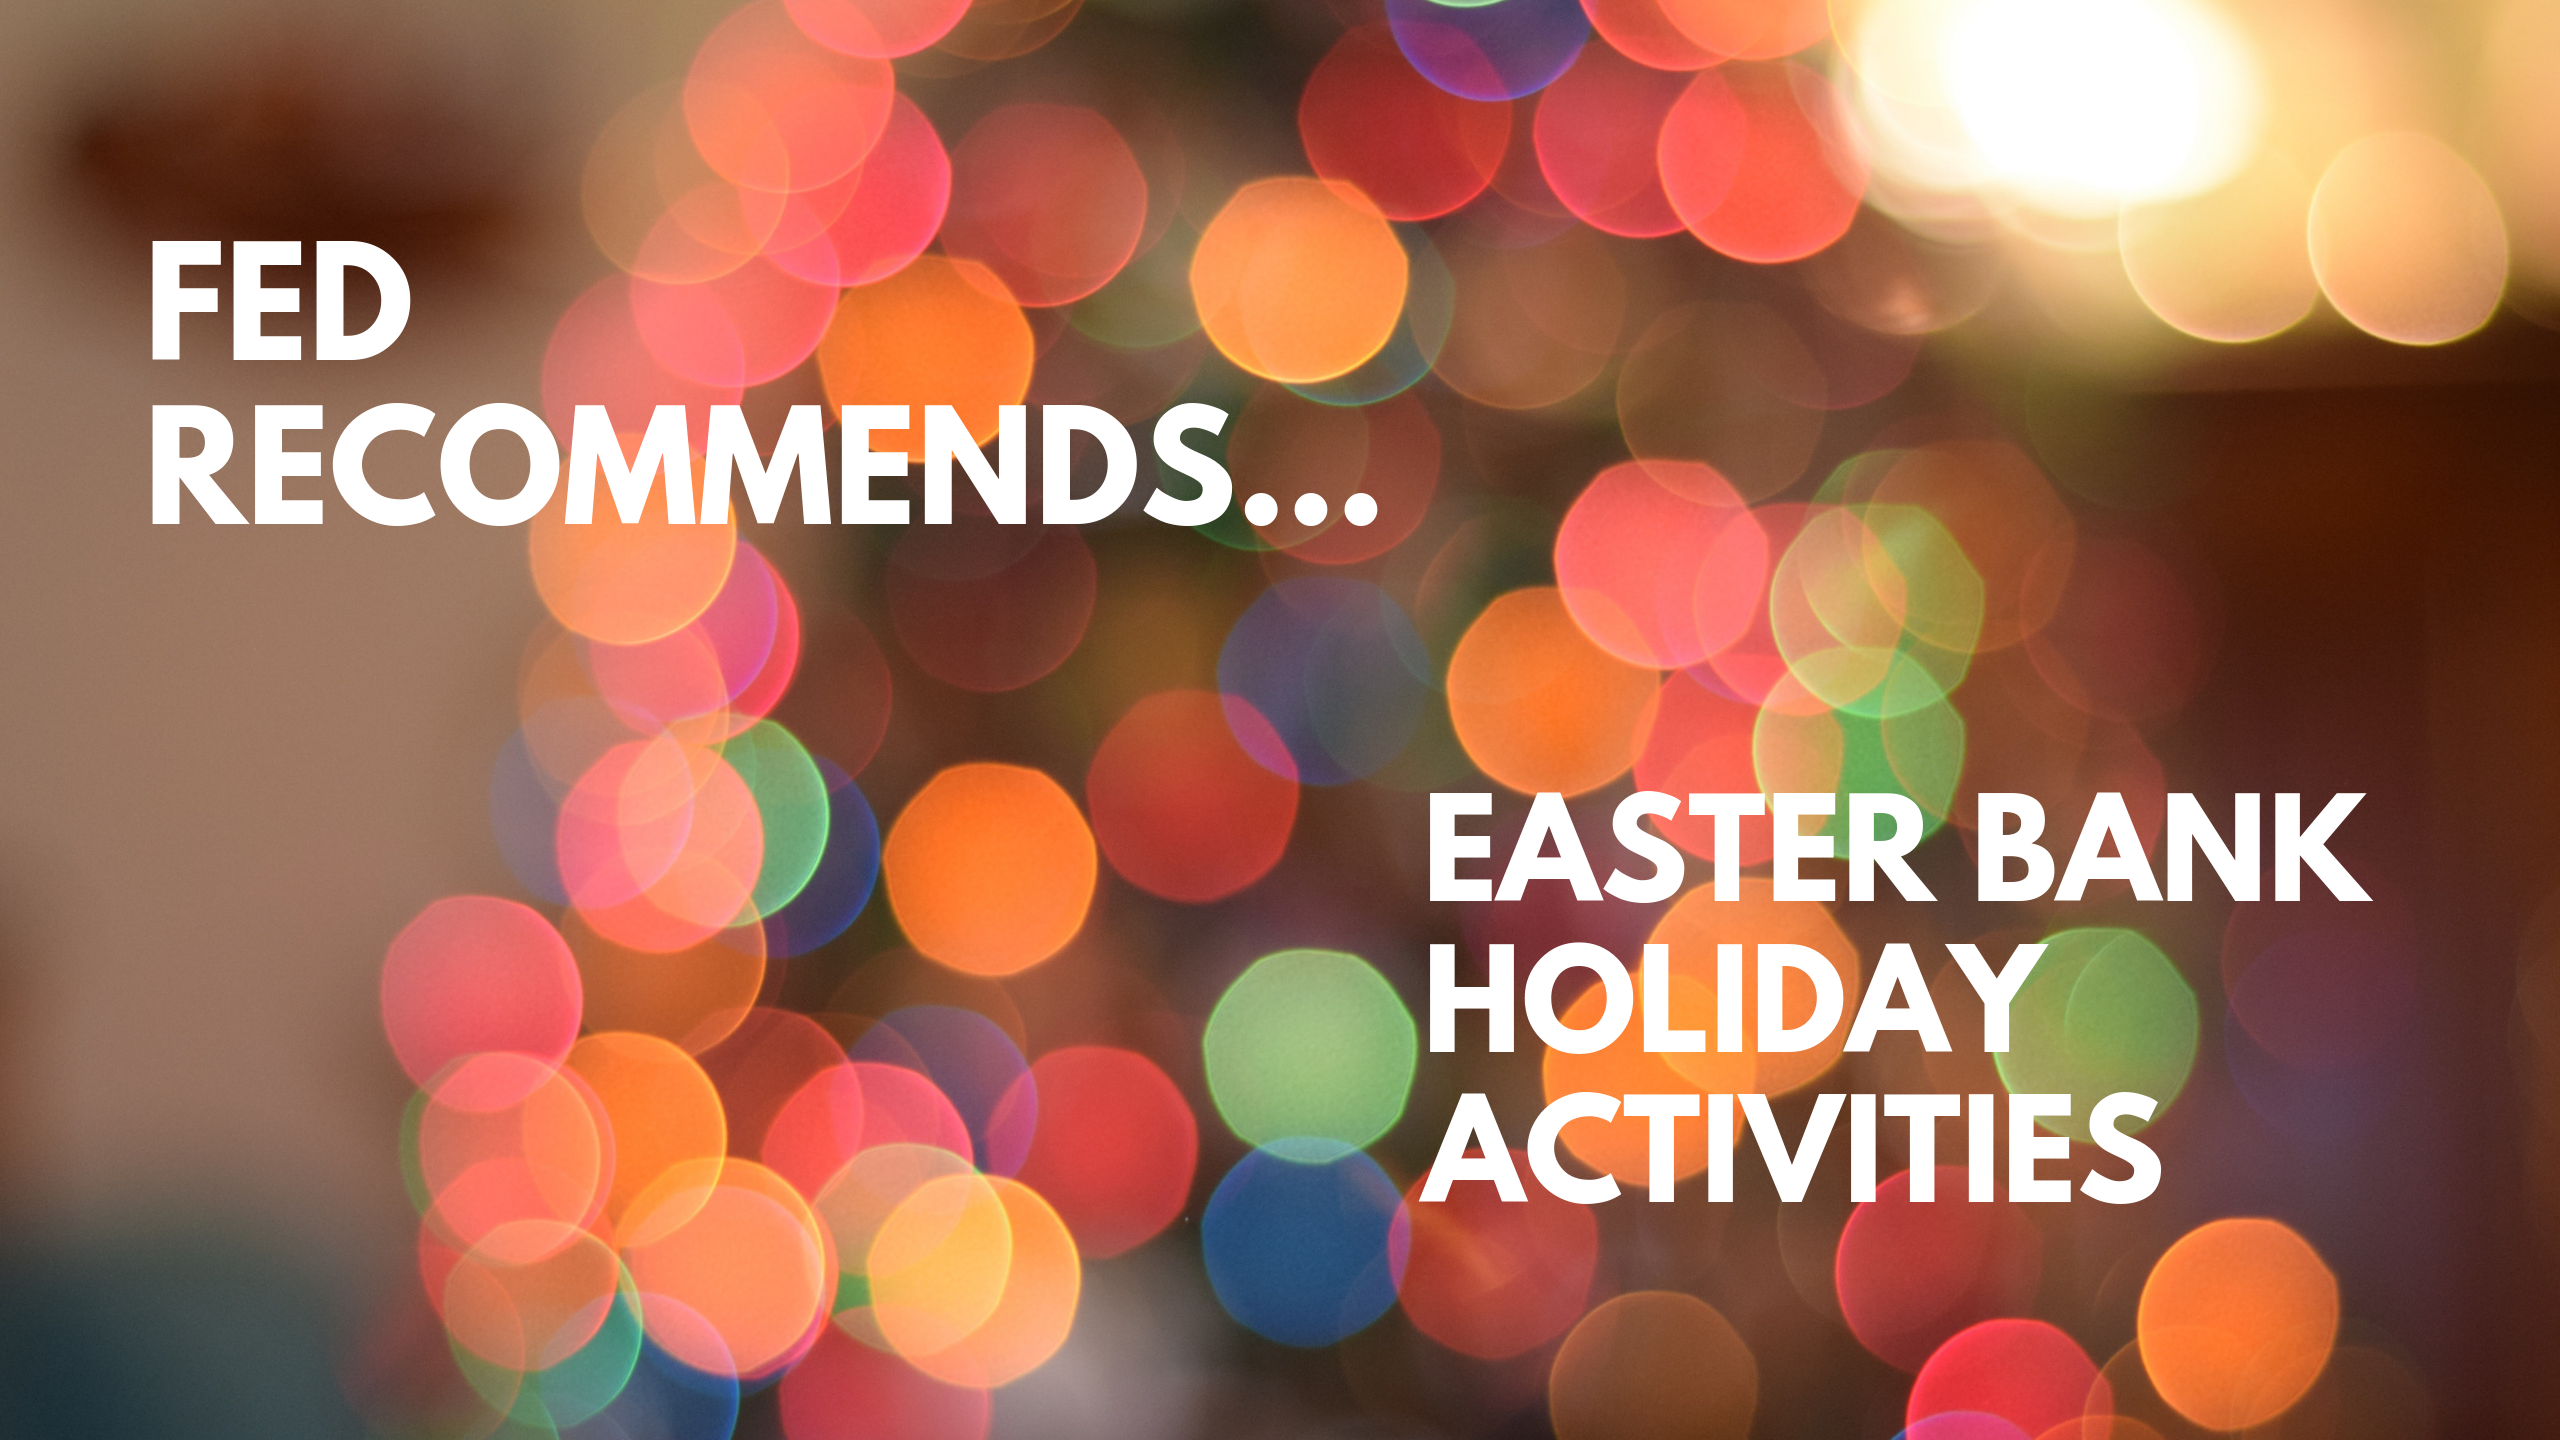 Fed recommends... Easter Bank Holiday Activities